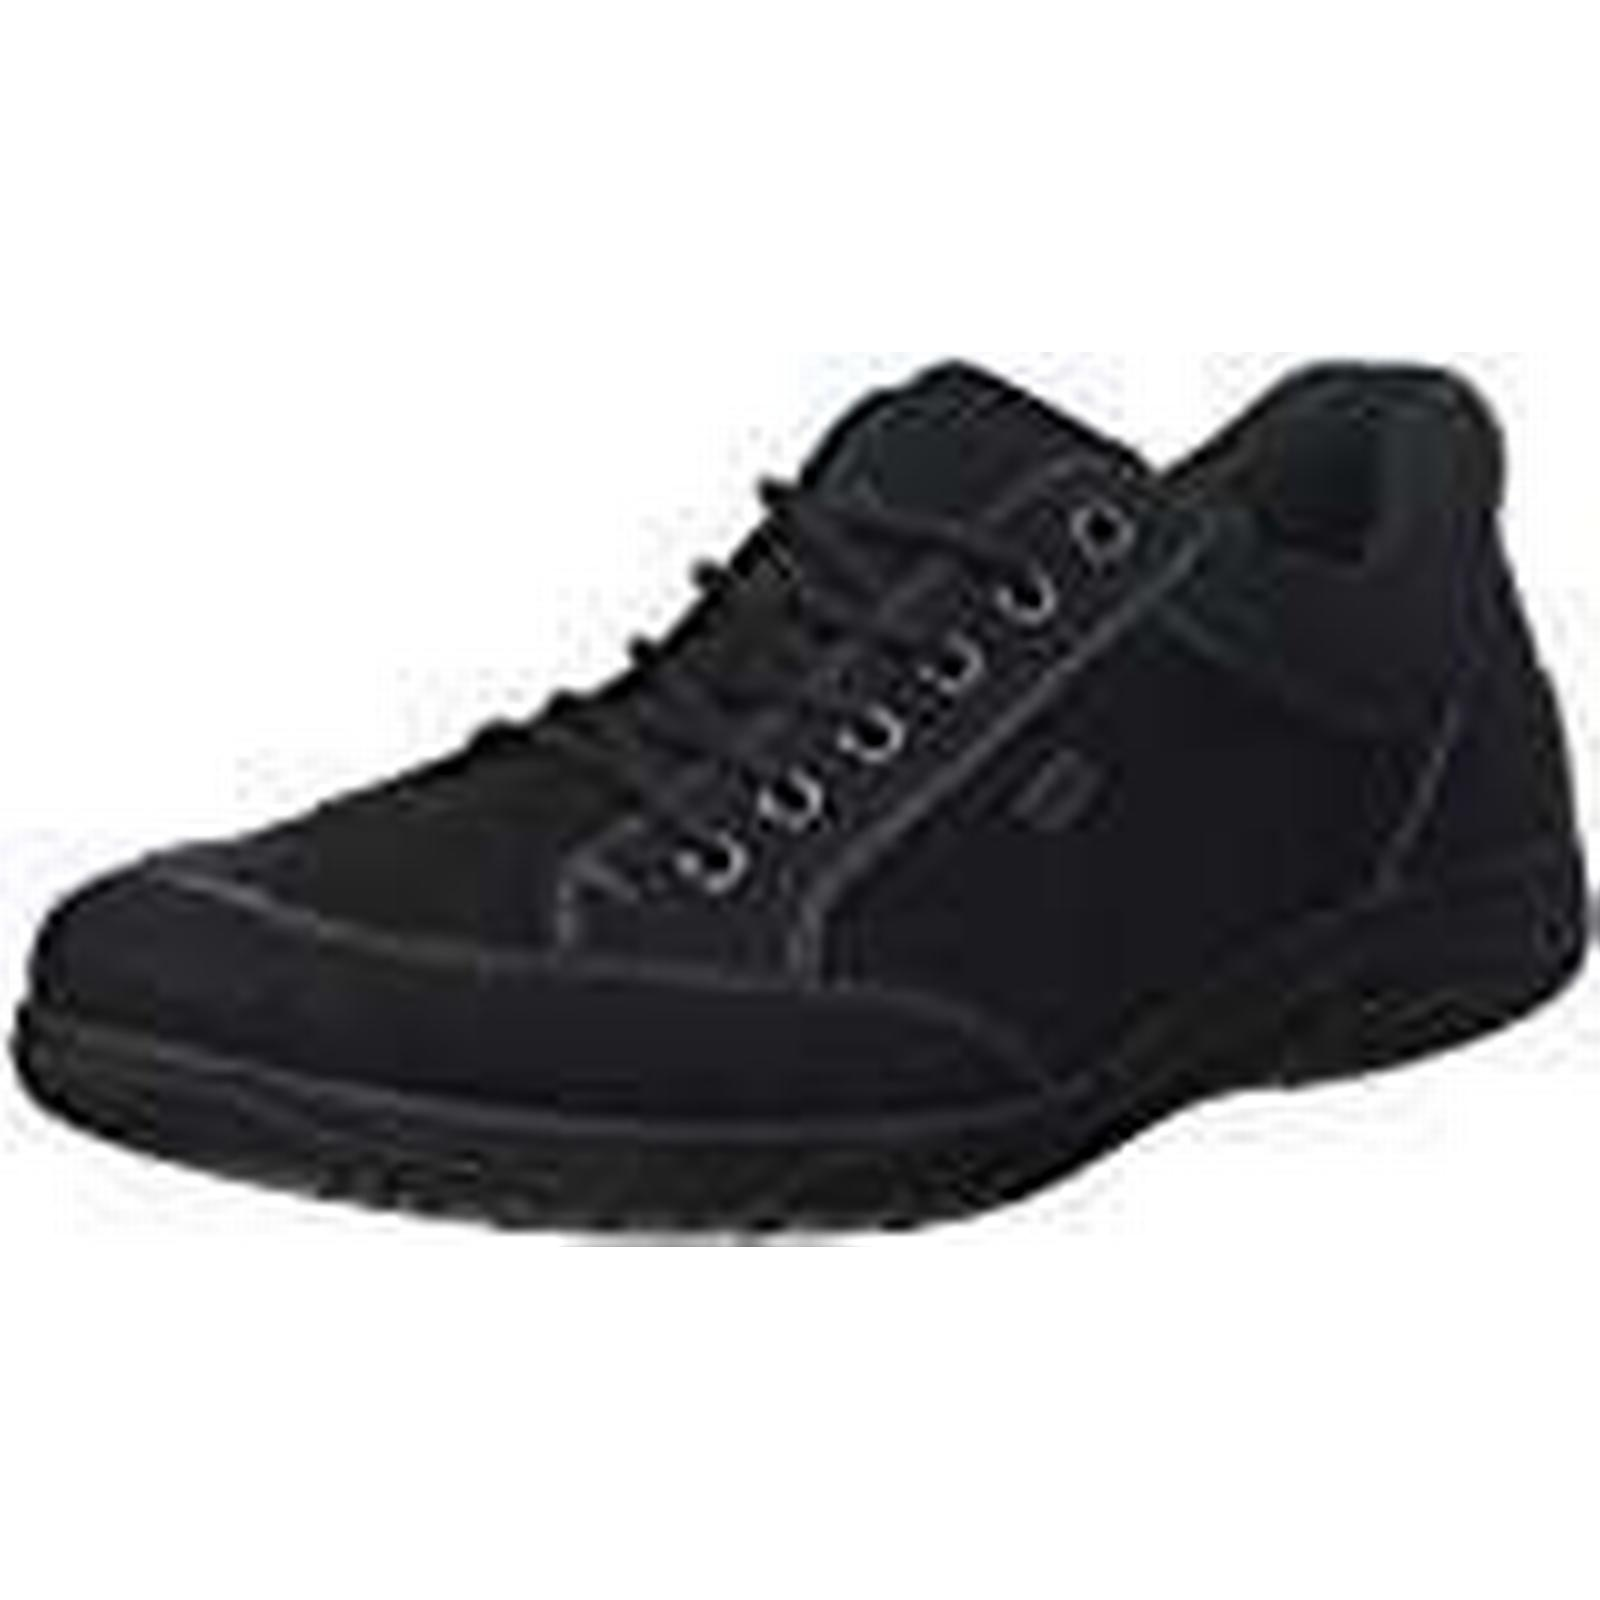 Rieker Men''s B6501 Trainers, EU (Black), 11 UK 46 EU Trainers, 11b0df